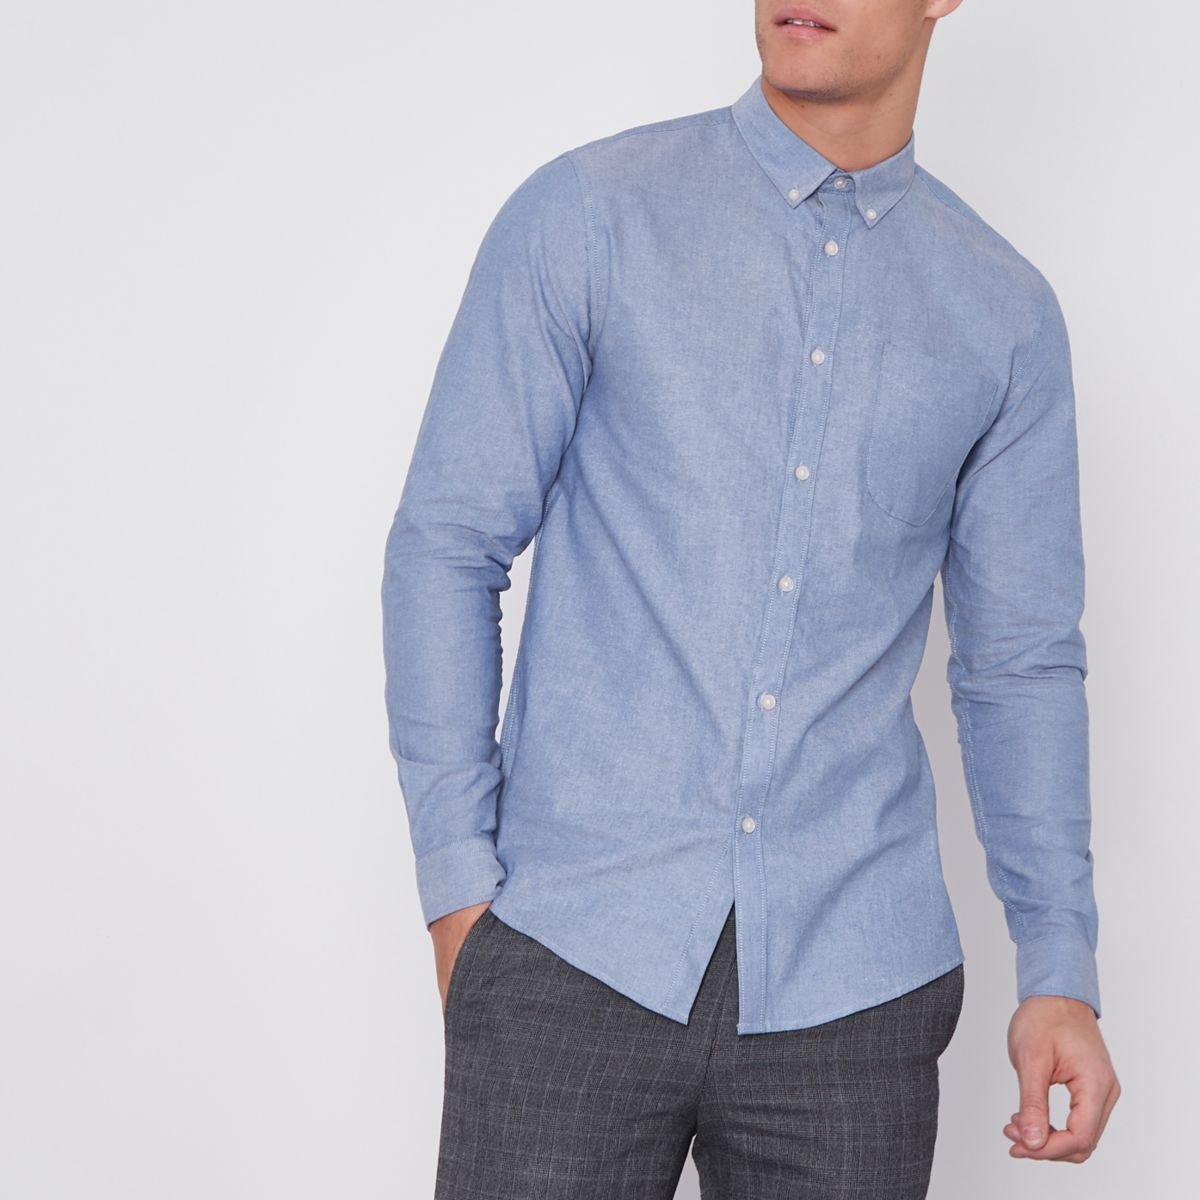 ASOS DESIGN casual slim oxford shirt with stretch and grandad collar. £ Farah Sansfer skinny fit oxford shirt in white. £ Farah Sansfer skinny fit oxford shirt in navy. £ Farah Sansfer super slim fit oxford shirt in grey. £